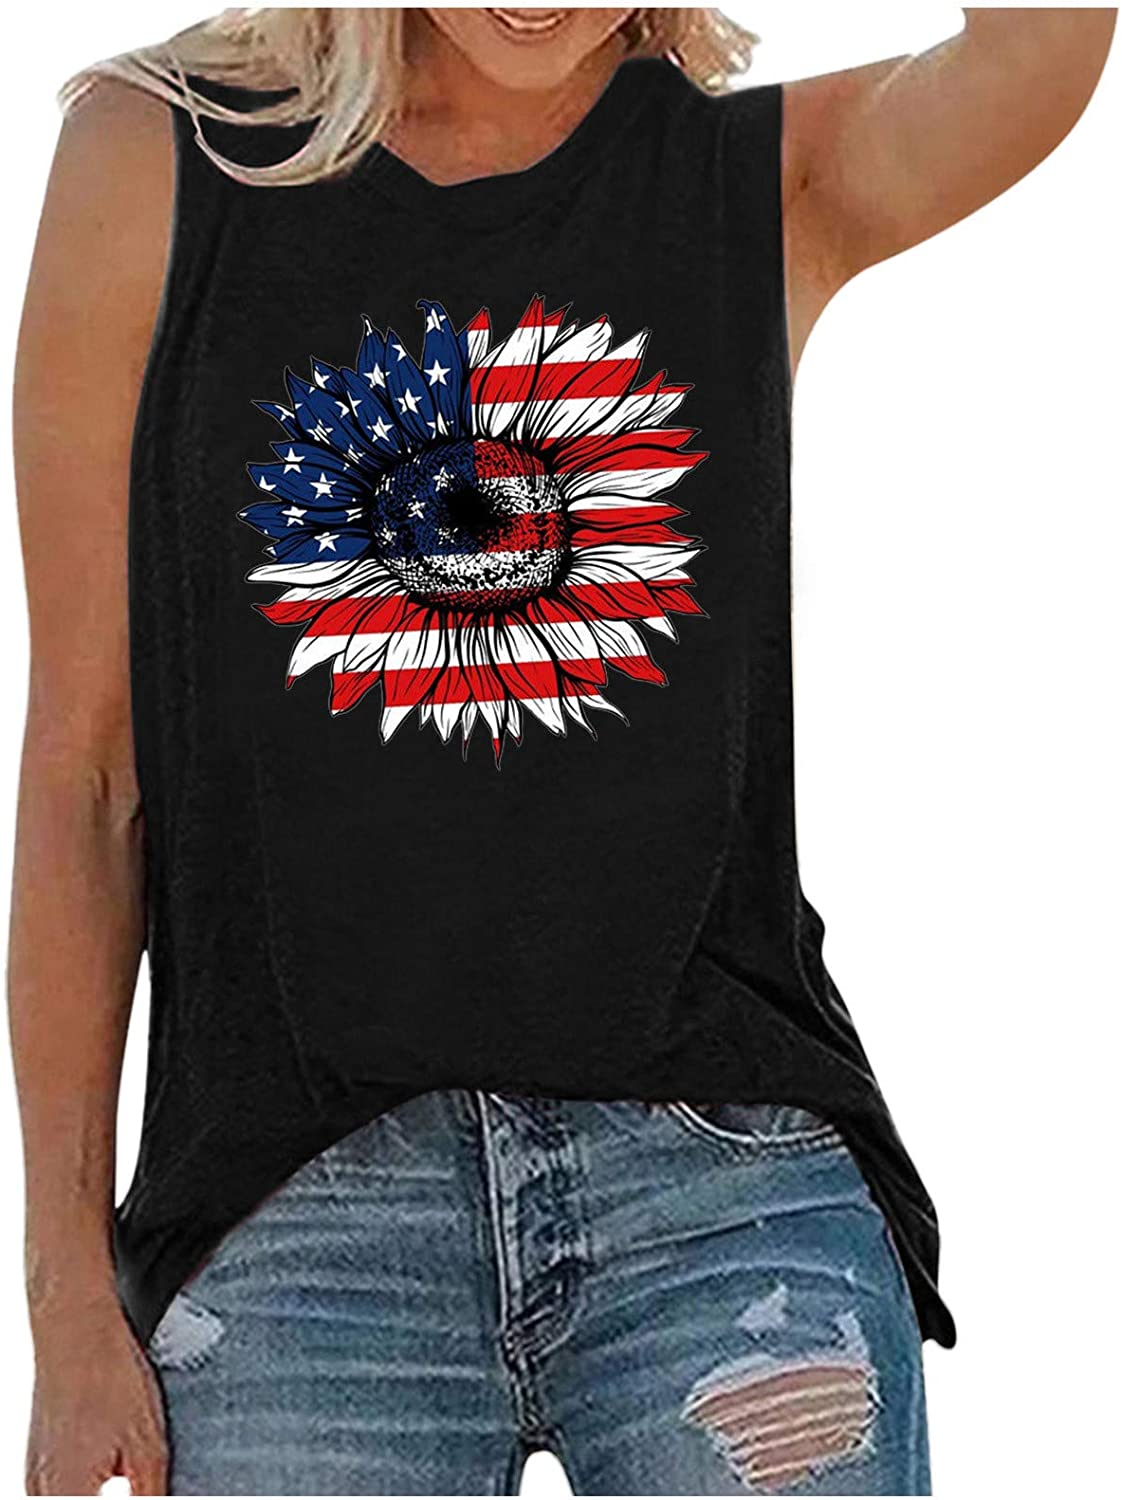 Tank Tops for Women, Fouth of July Sleeveless O-Neck Tunic Blouse Tops Tees Sunflower Printed T Shirts Blouses